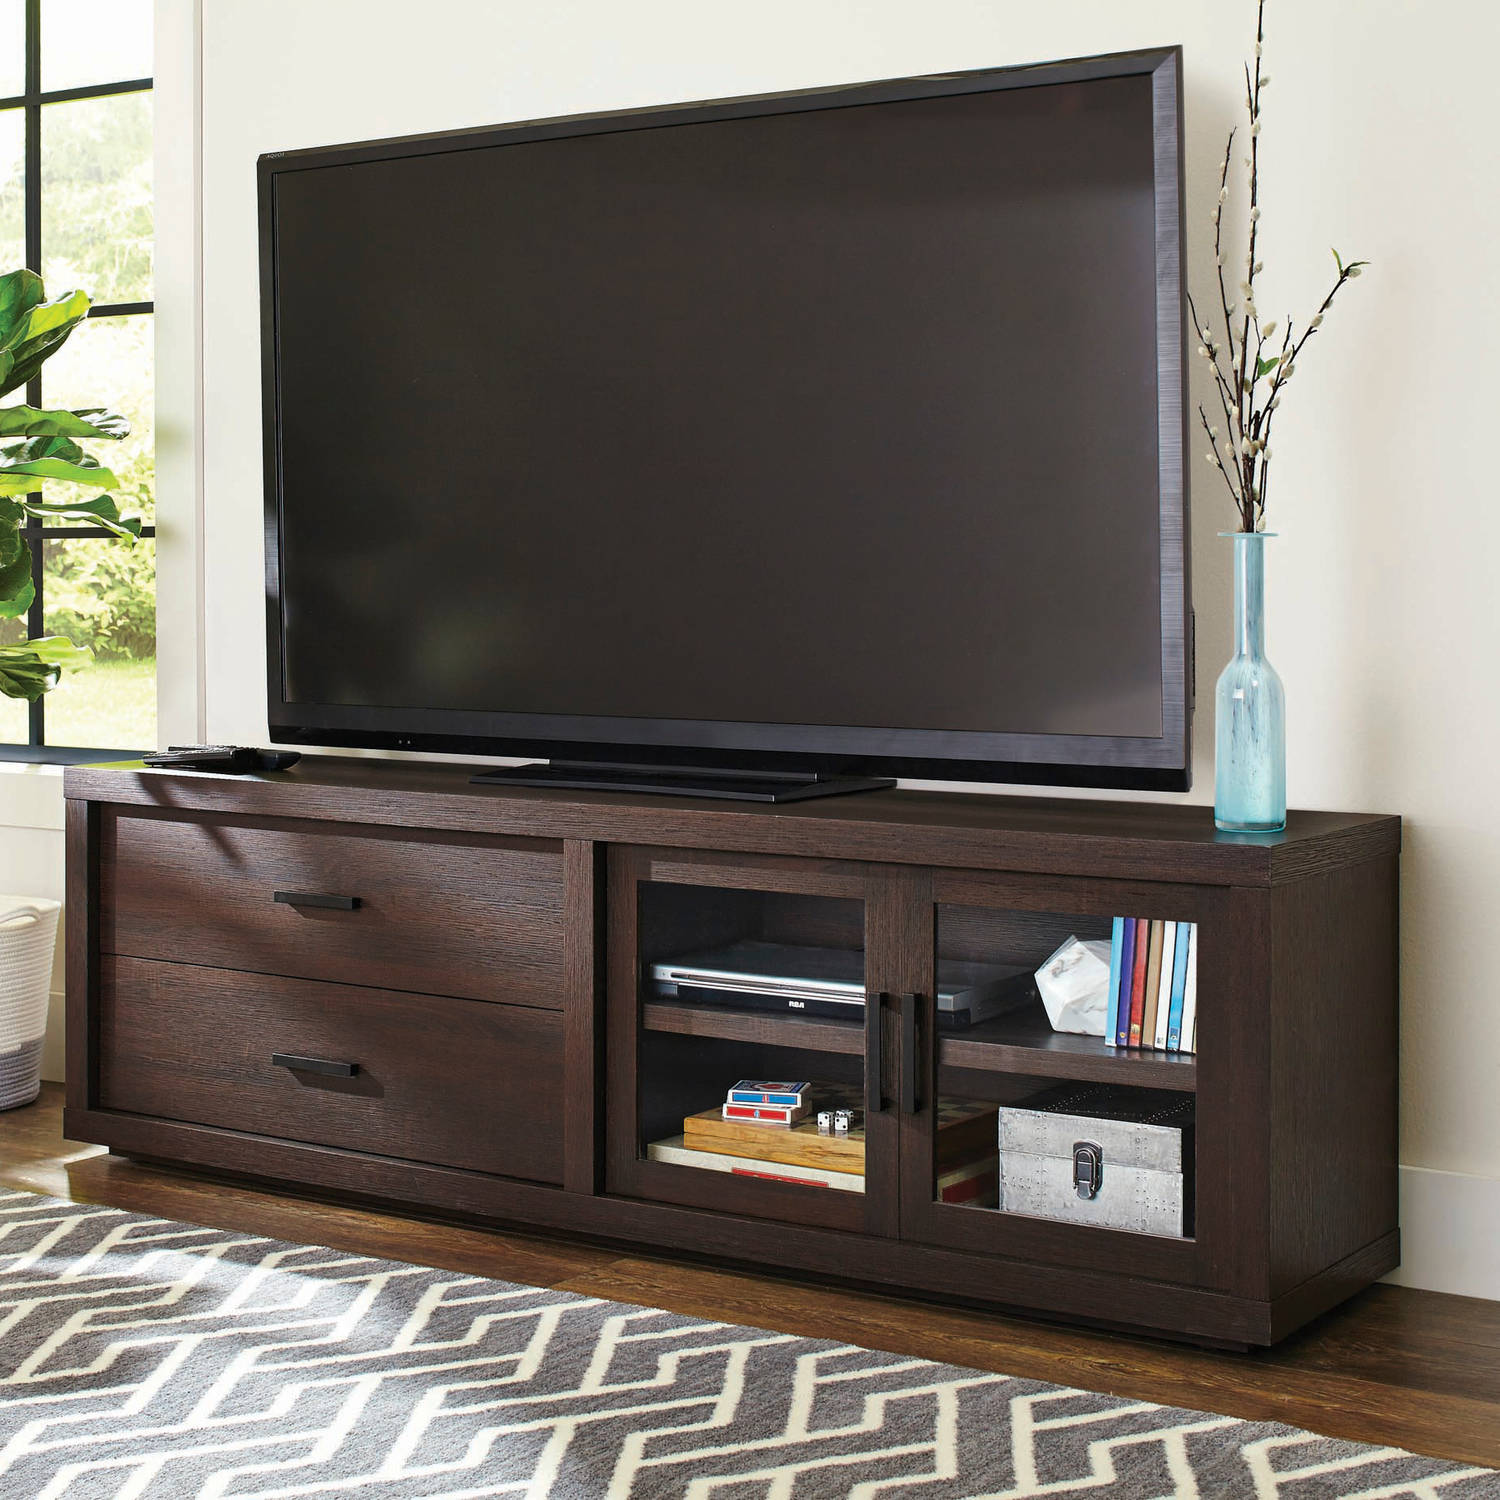 "Better Homes & Gardens Steele TV Stand for TV's up to 80"", Walnut Finish"